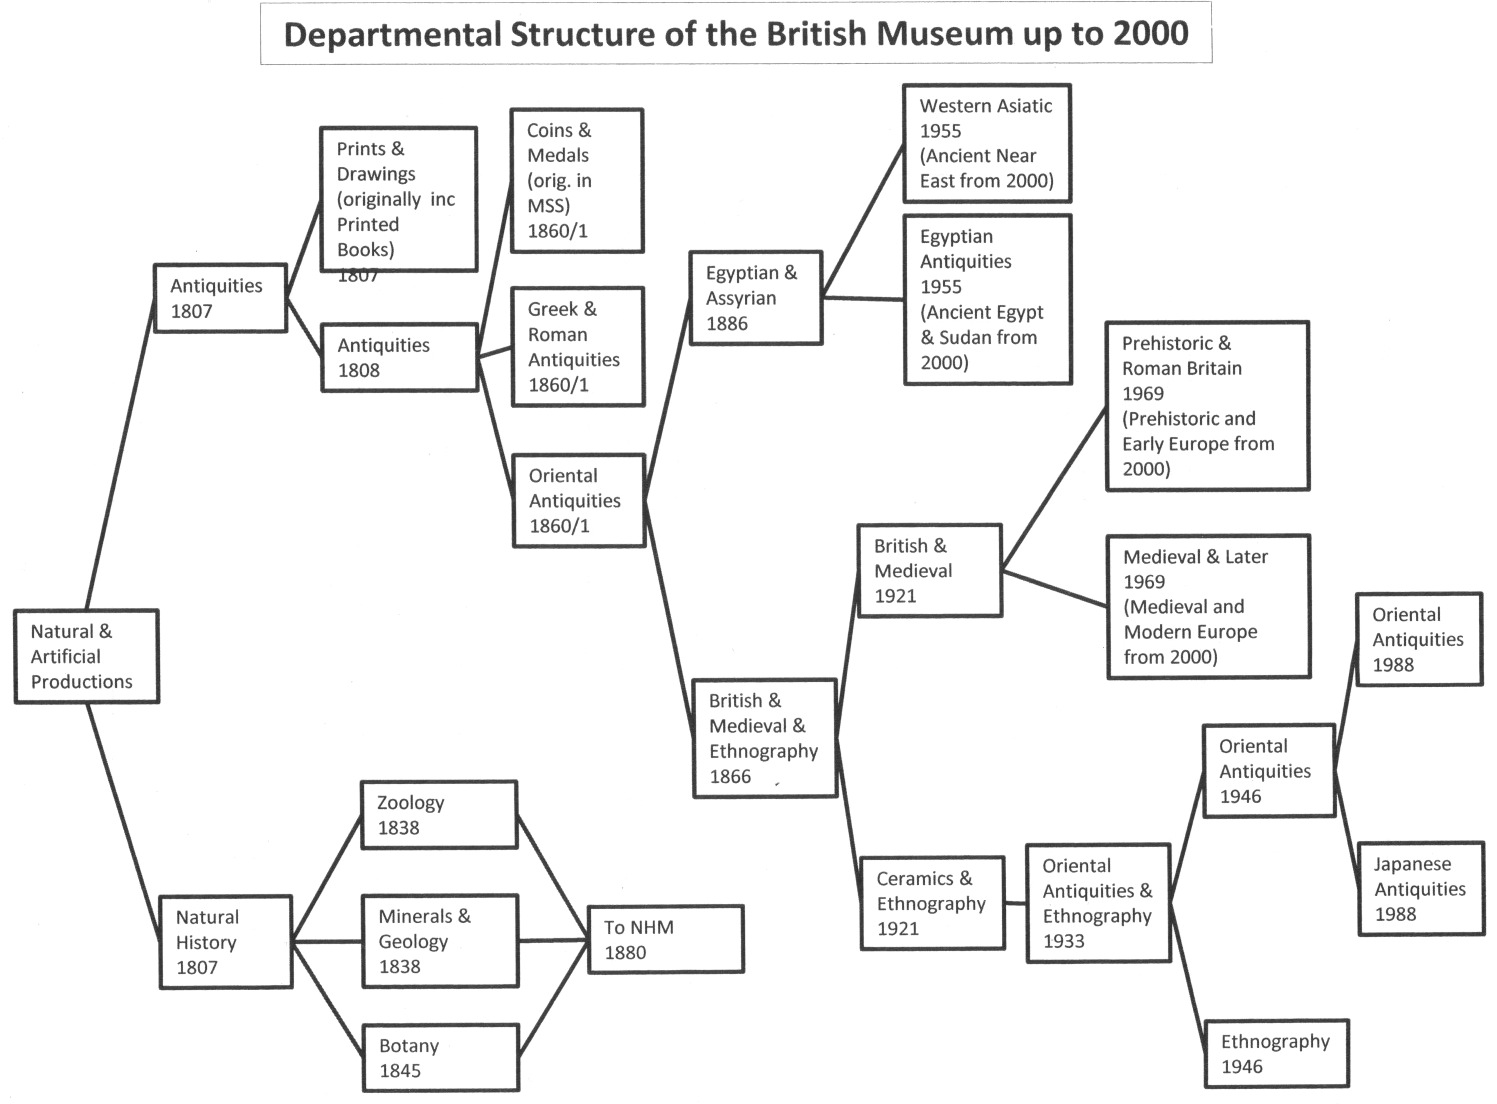 Handout from Francesca Hillier showing the evolving departments of the British Museum